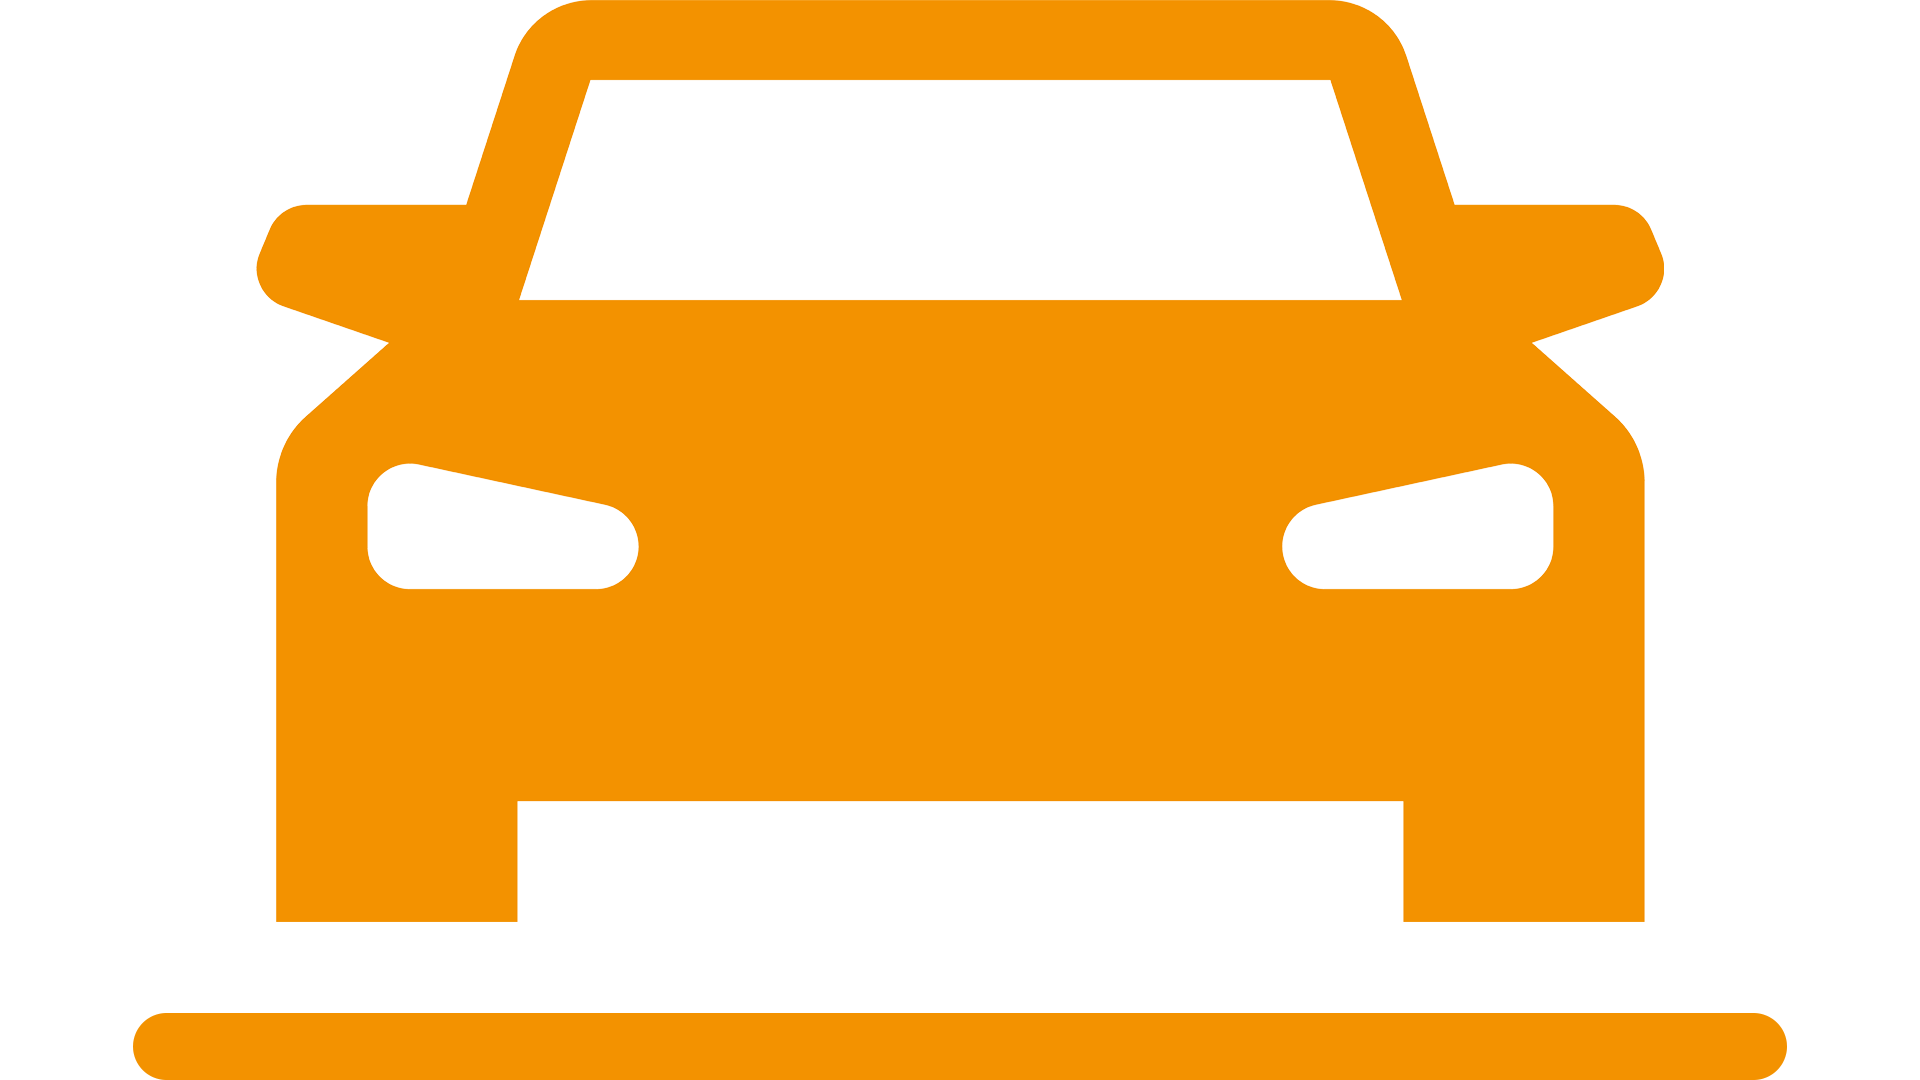 pictogram of the front of a car